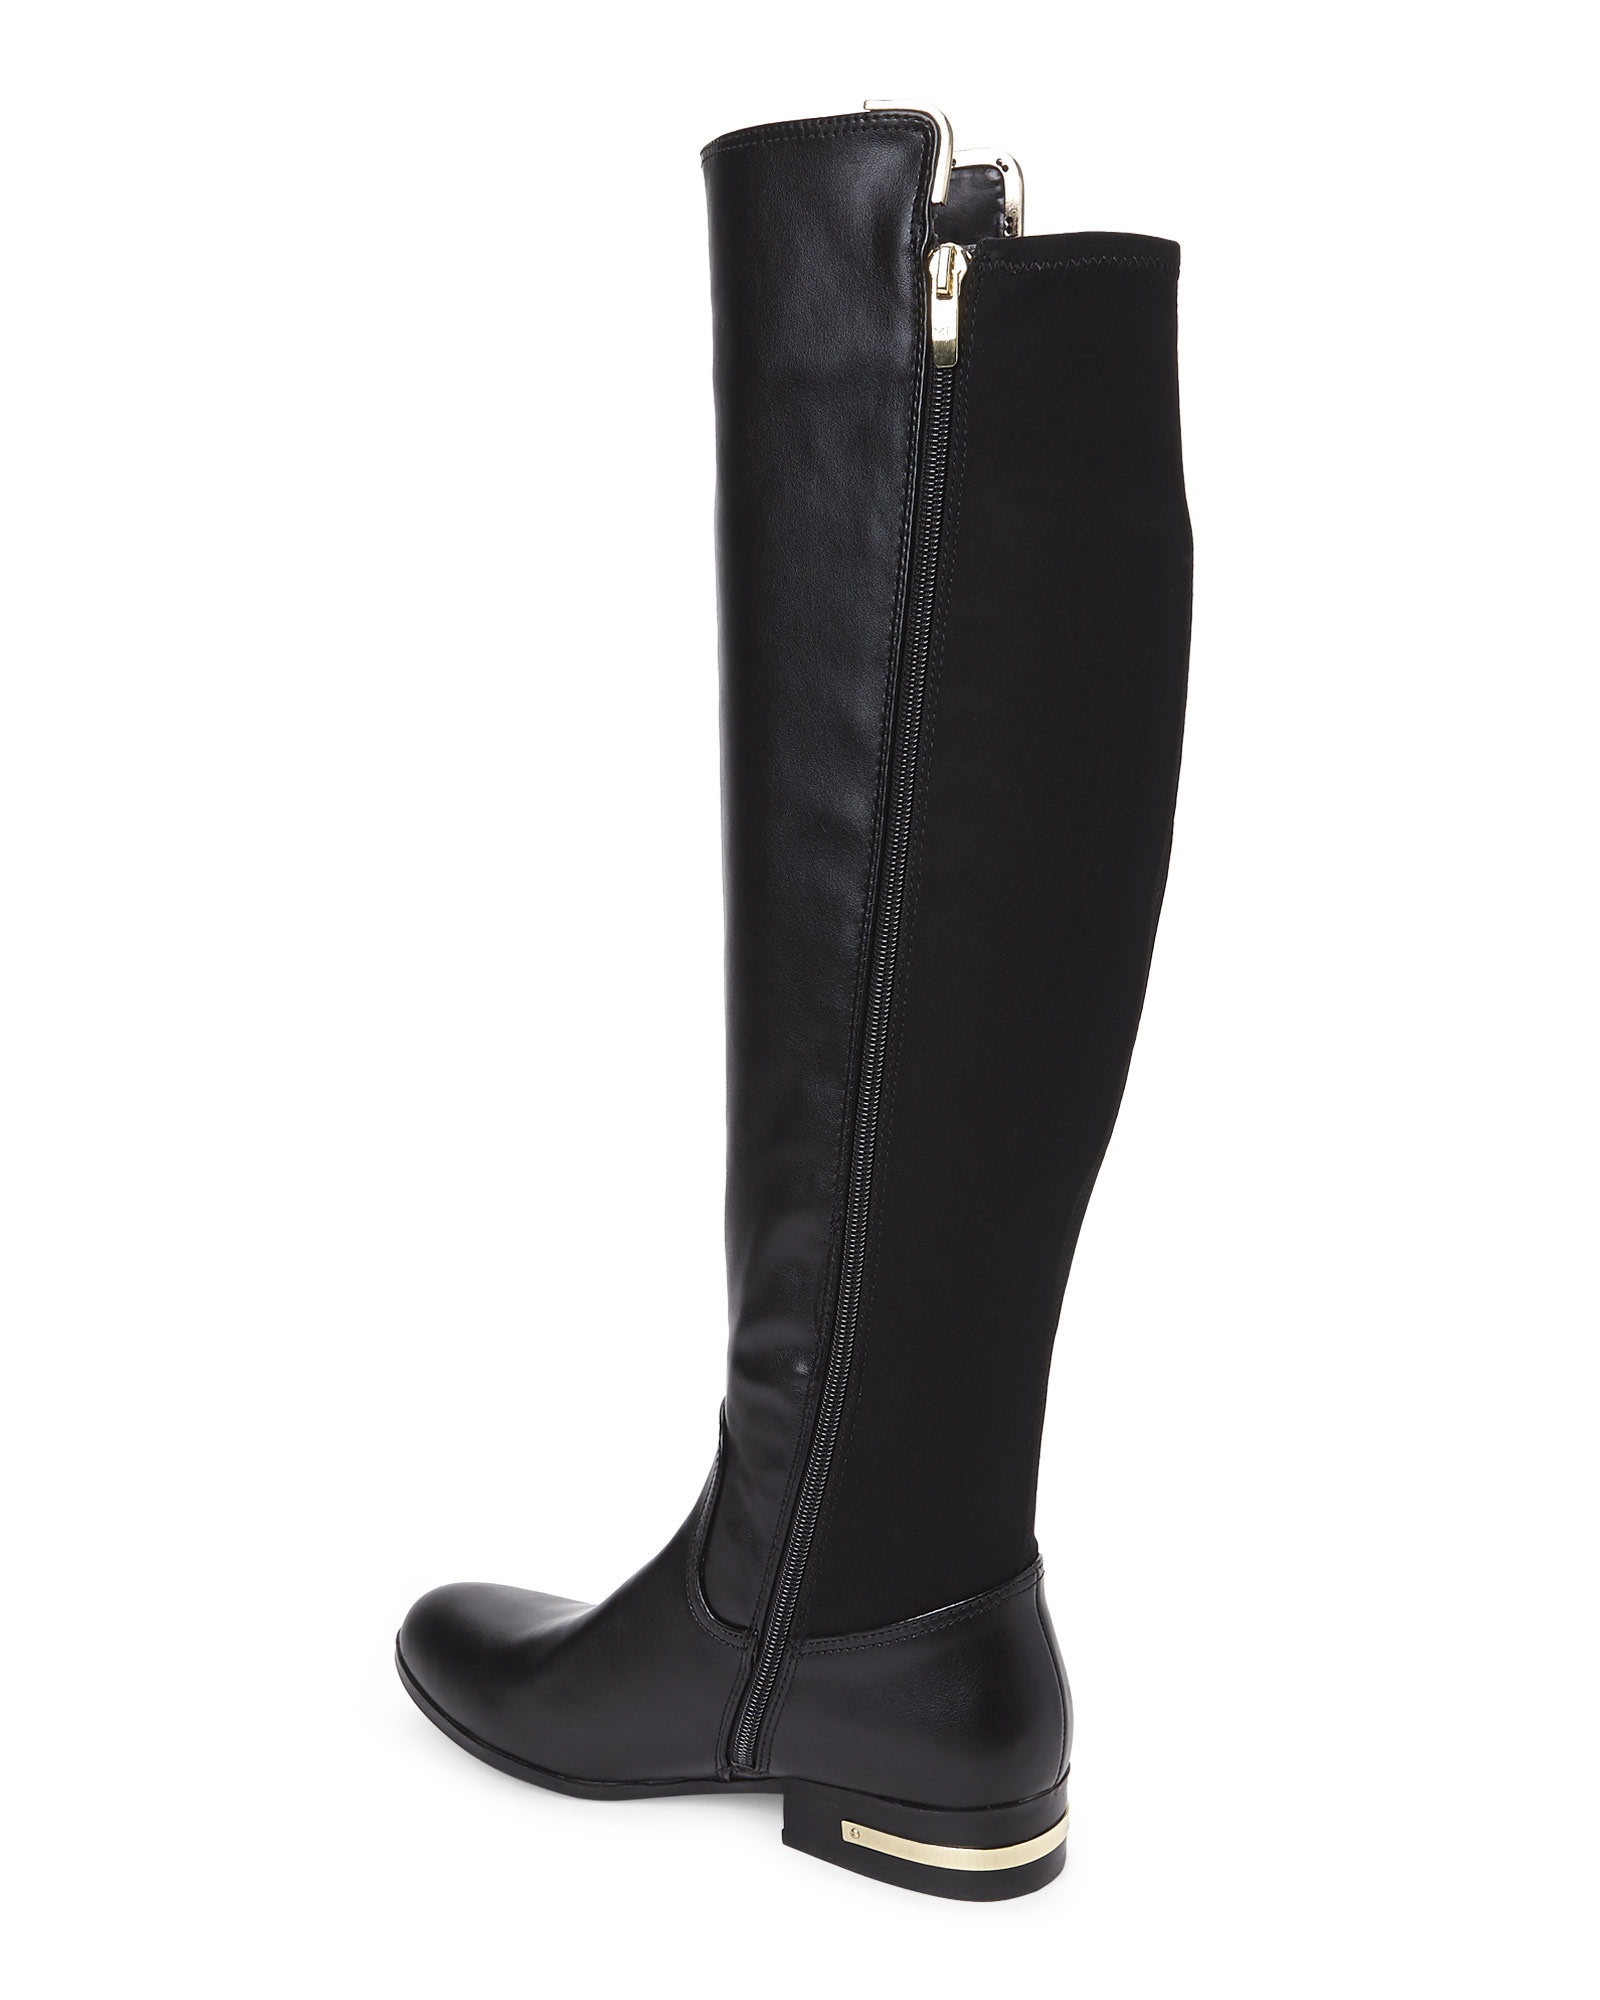 Marc fisher Phoenix Tall Riding Boots in Black | Lyst